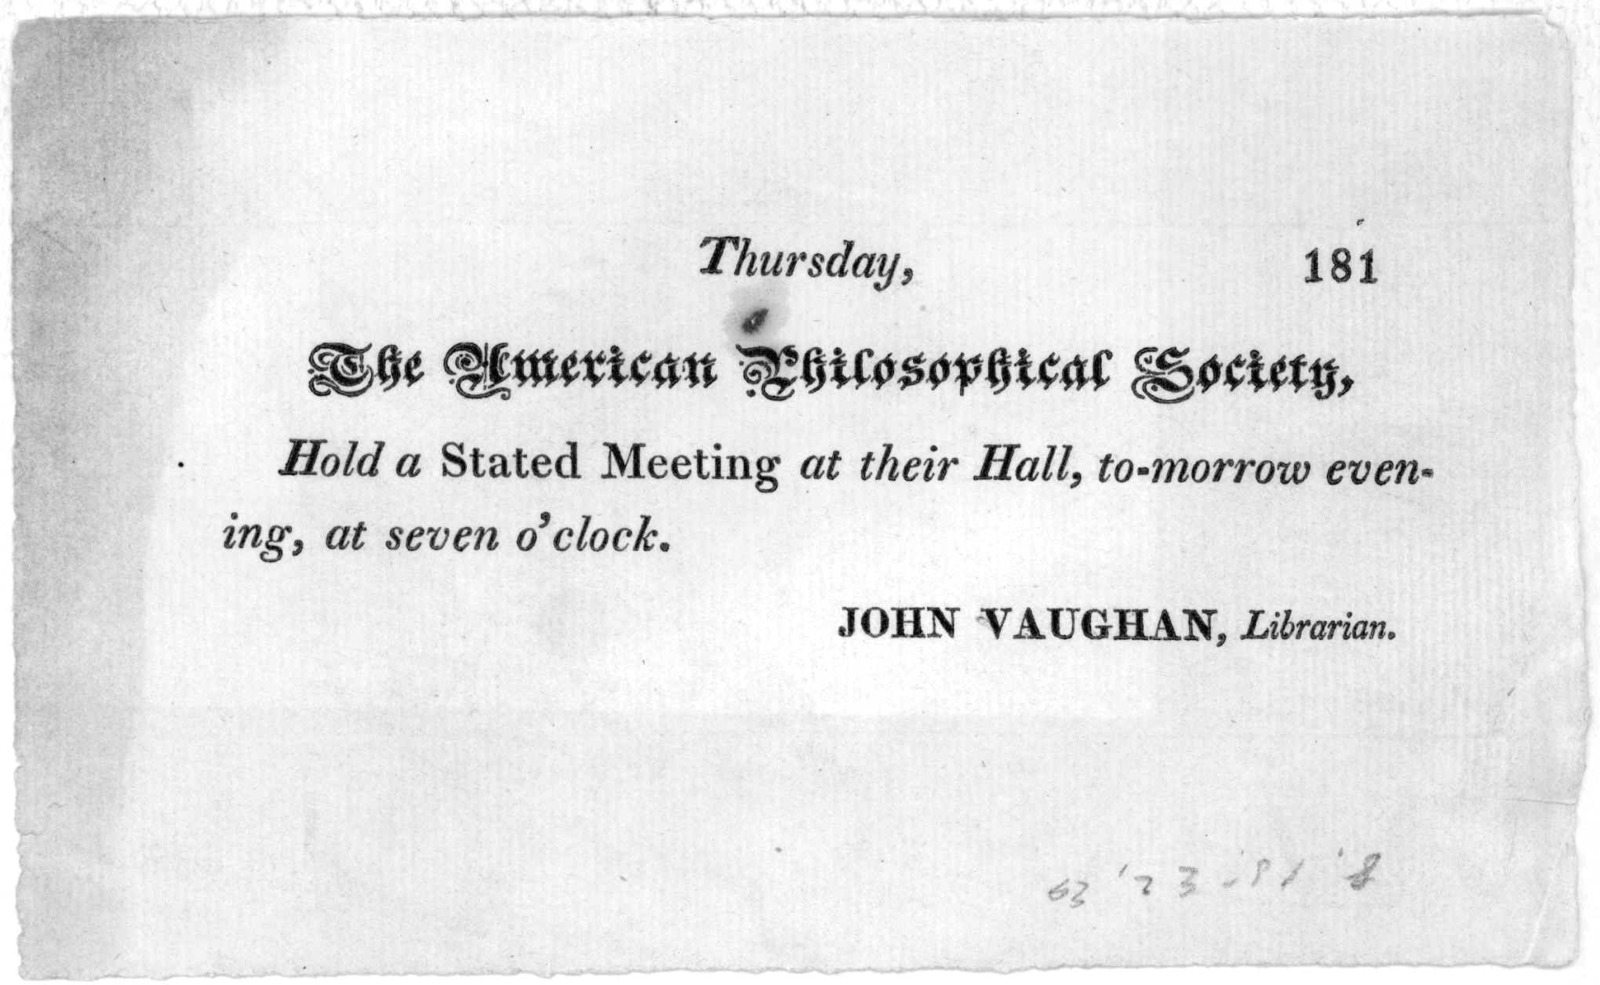 Thursday, 181 The American Philosophical Society, hold a stated meeting at their hall, to-morrow evening, at seven o'clock. John Vaughan, Librarian.